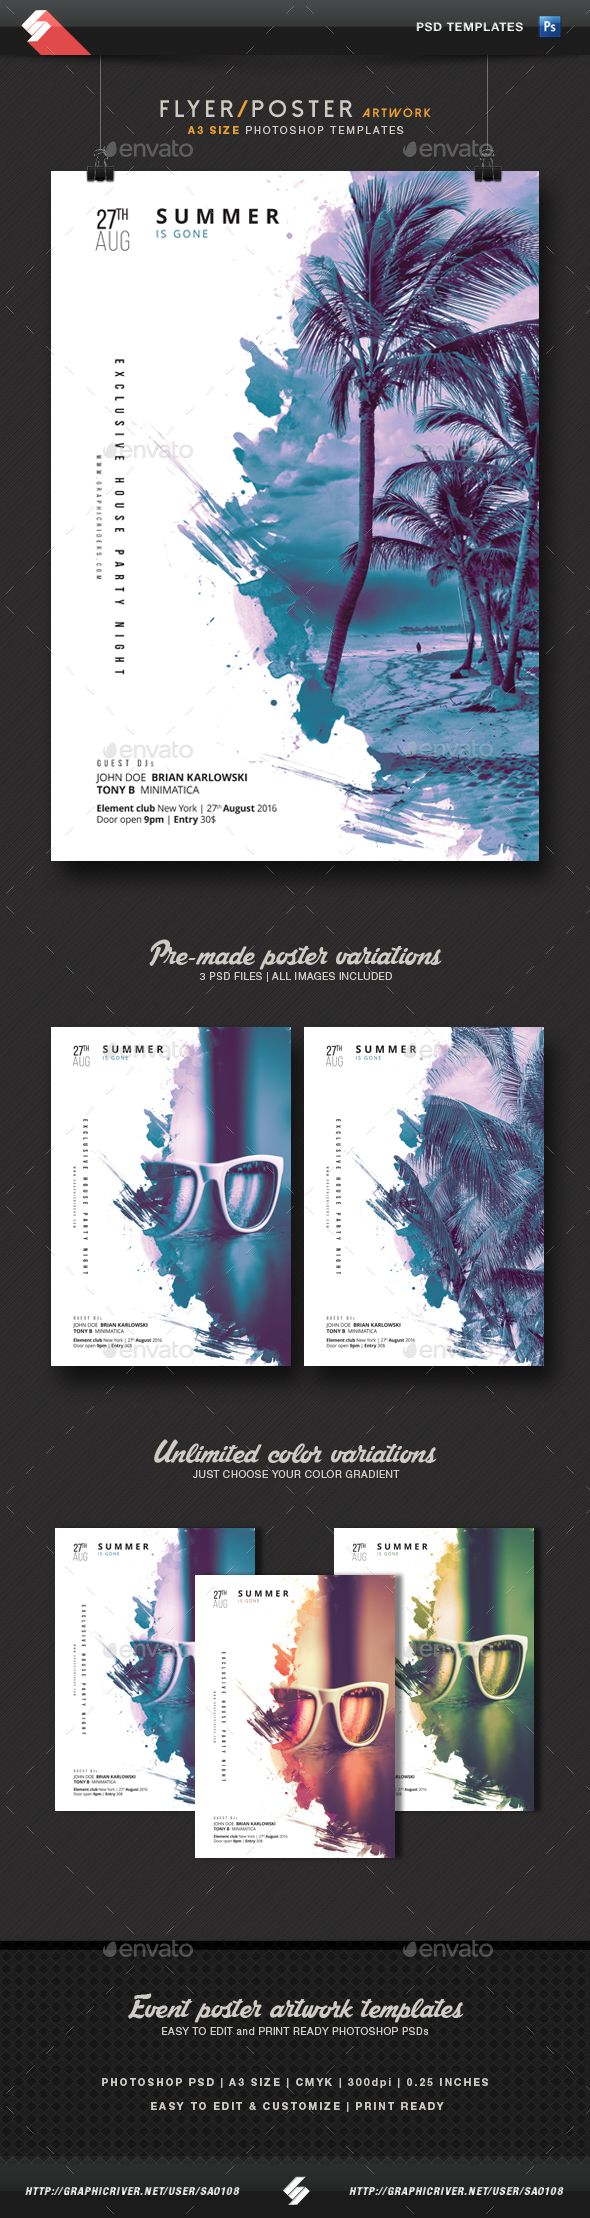 GraphicRiver: Summer Is Gone - Party Flyer / Poster Artwork Template A3https://graphicriver.net/item/summer-is-gone-party-flyer-poster-artwork-template-a3/17109879?ref=pxcr